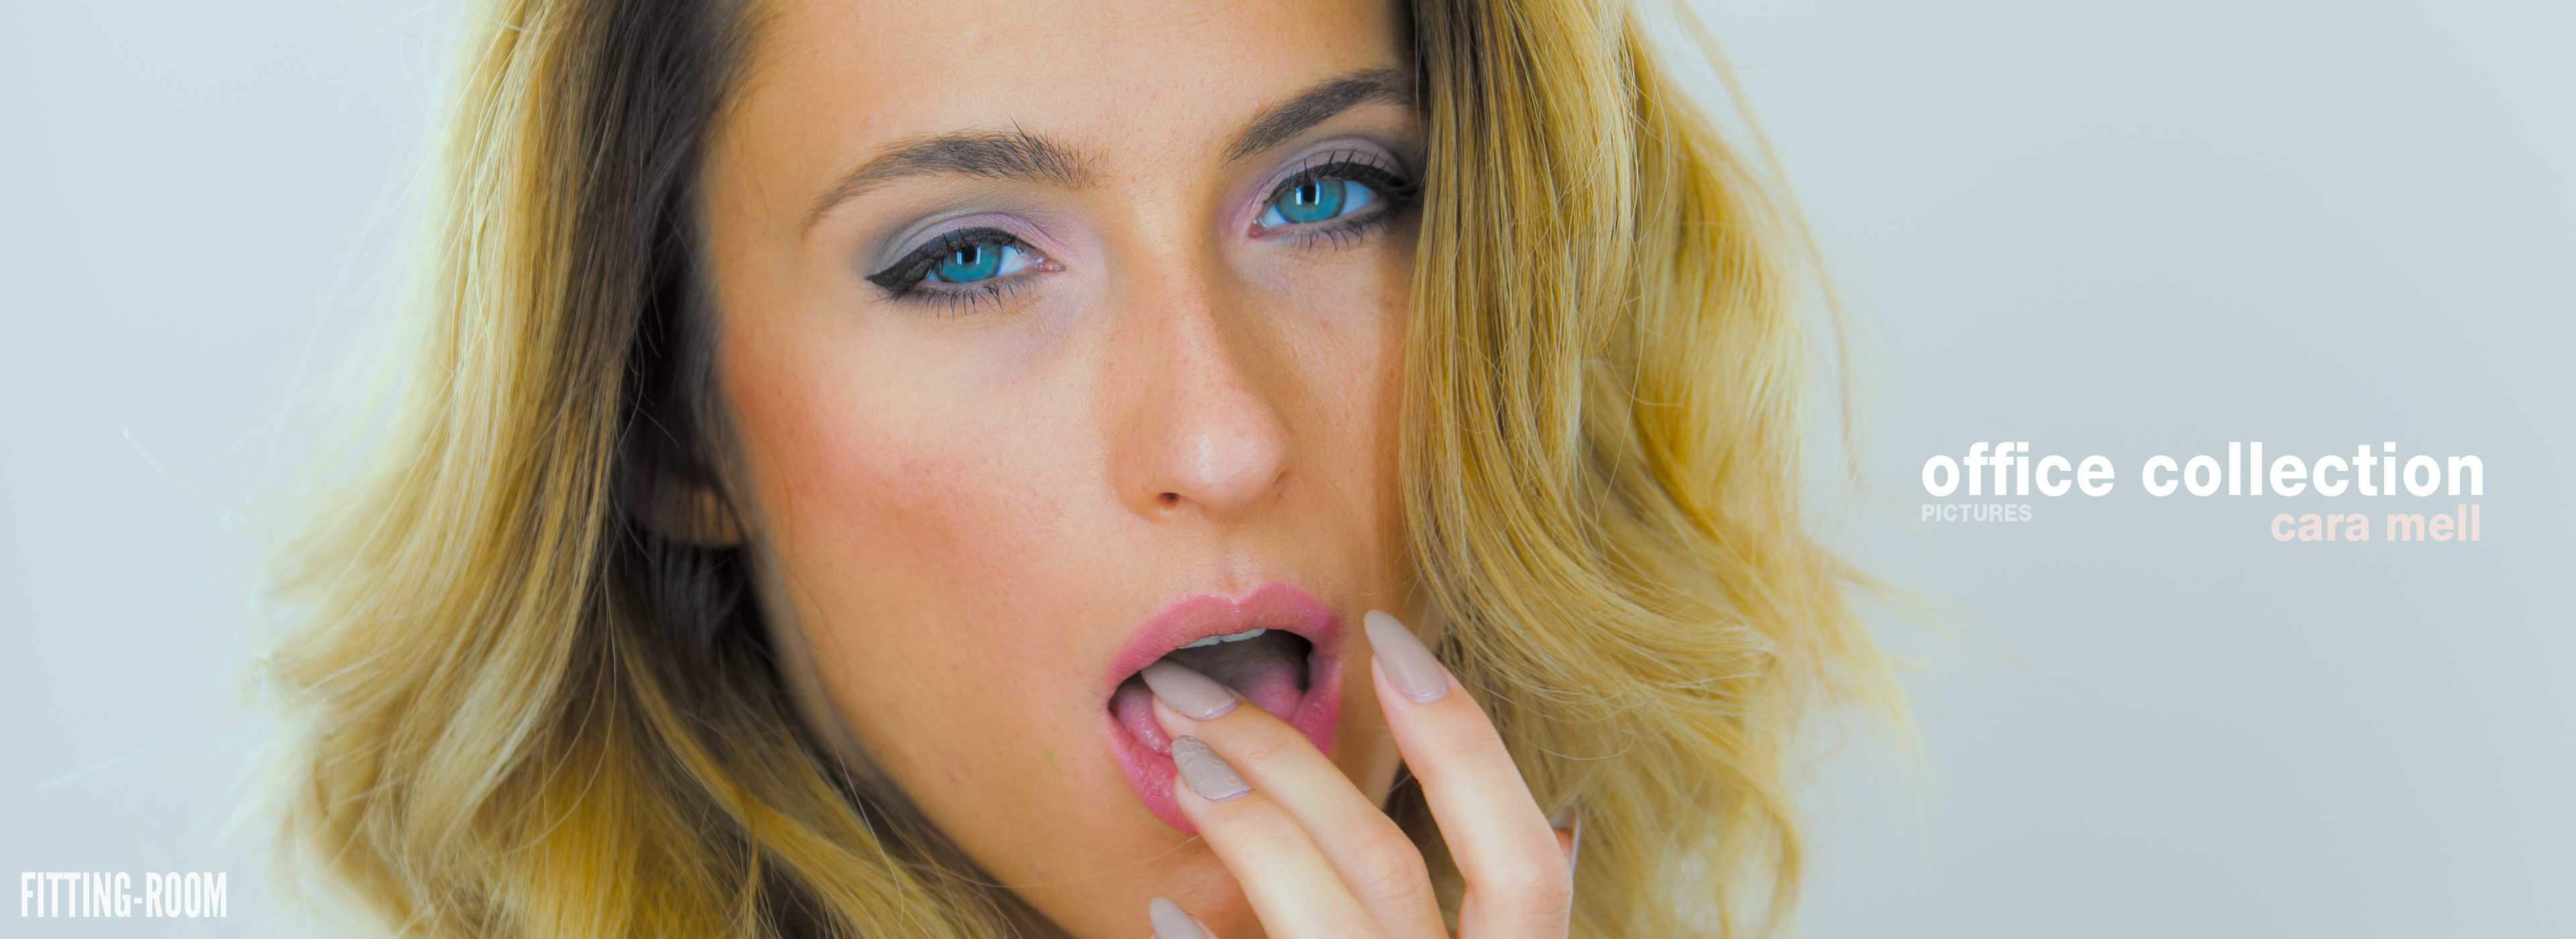 Cara Mell is sweet and seductive and oh so horny, and is with us tonight in the fitting-room for a voyeur fetish video